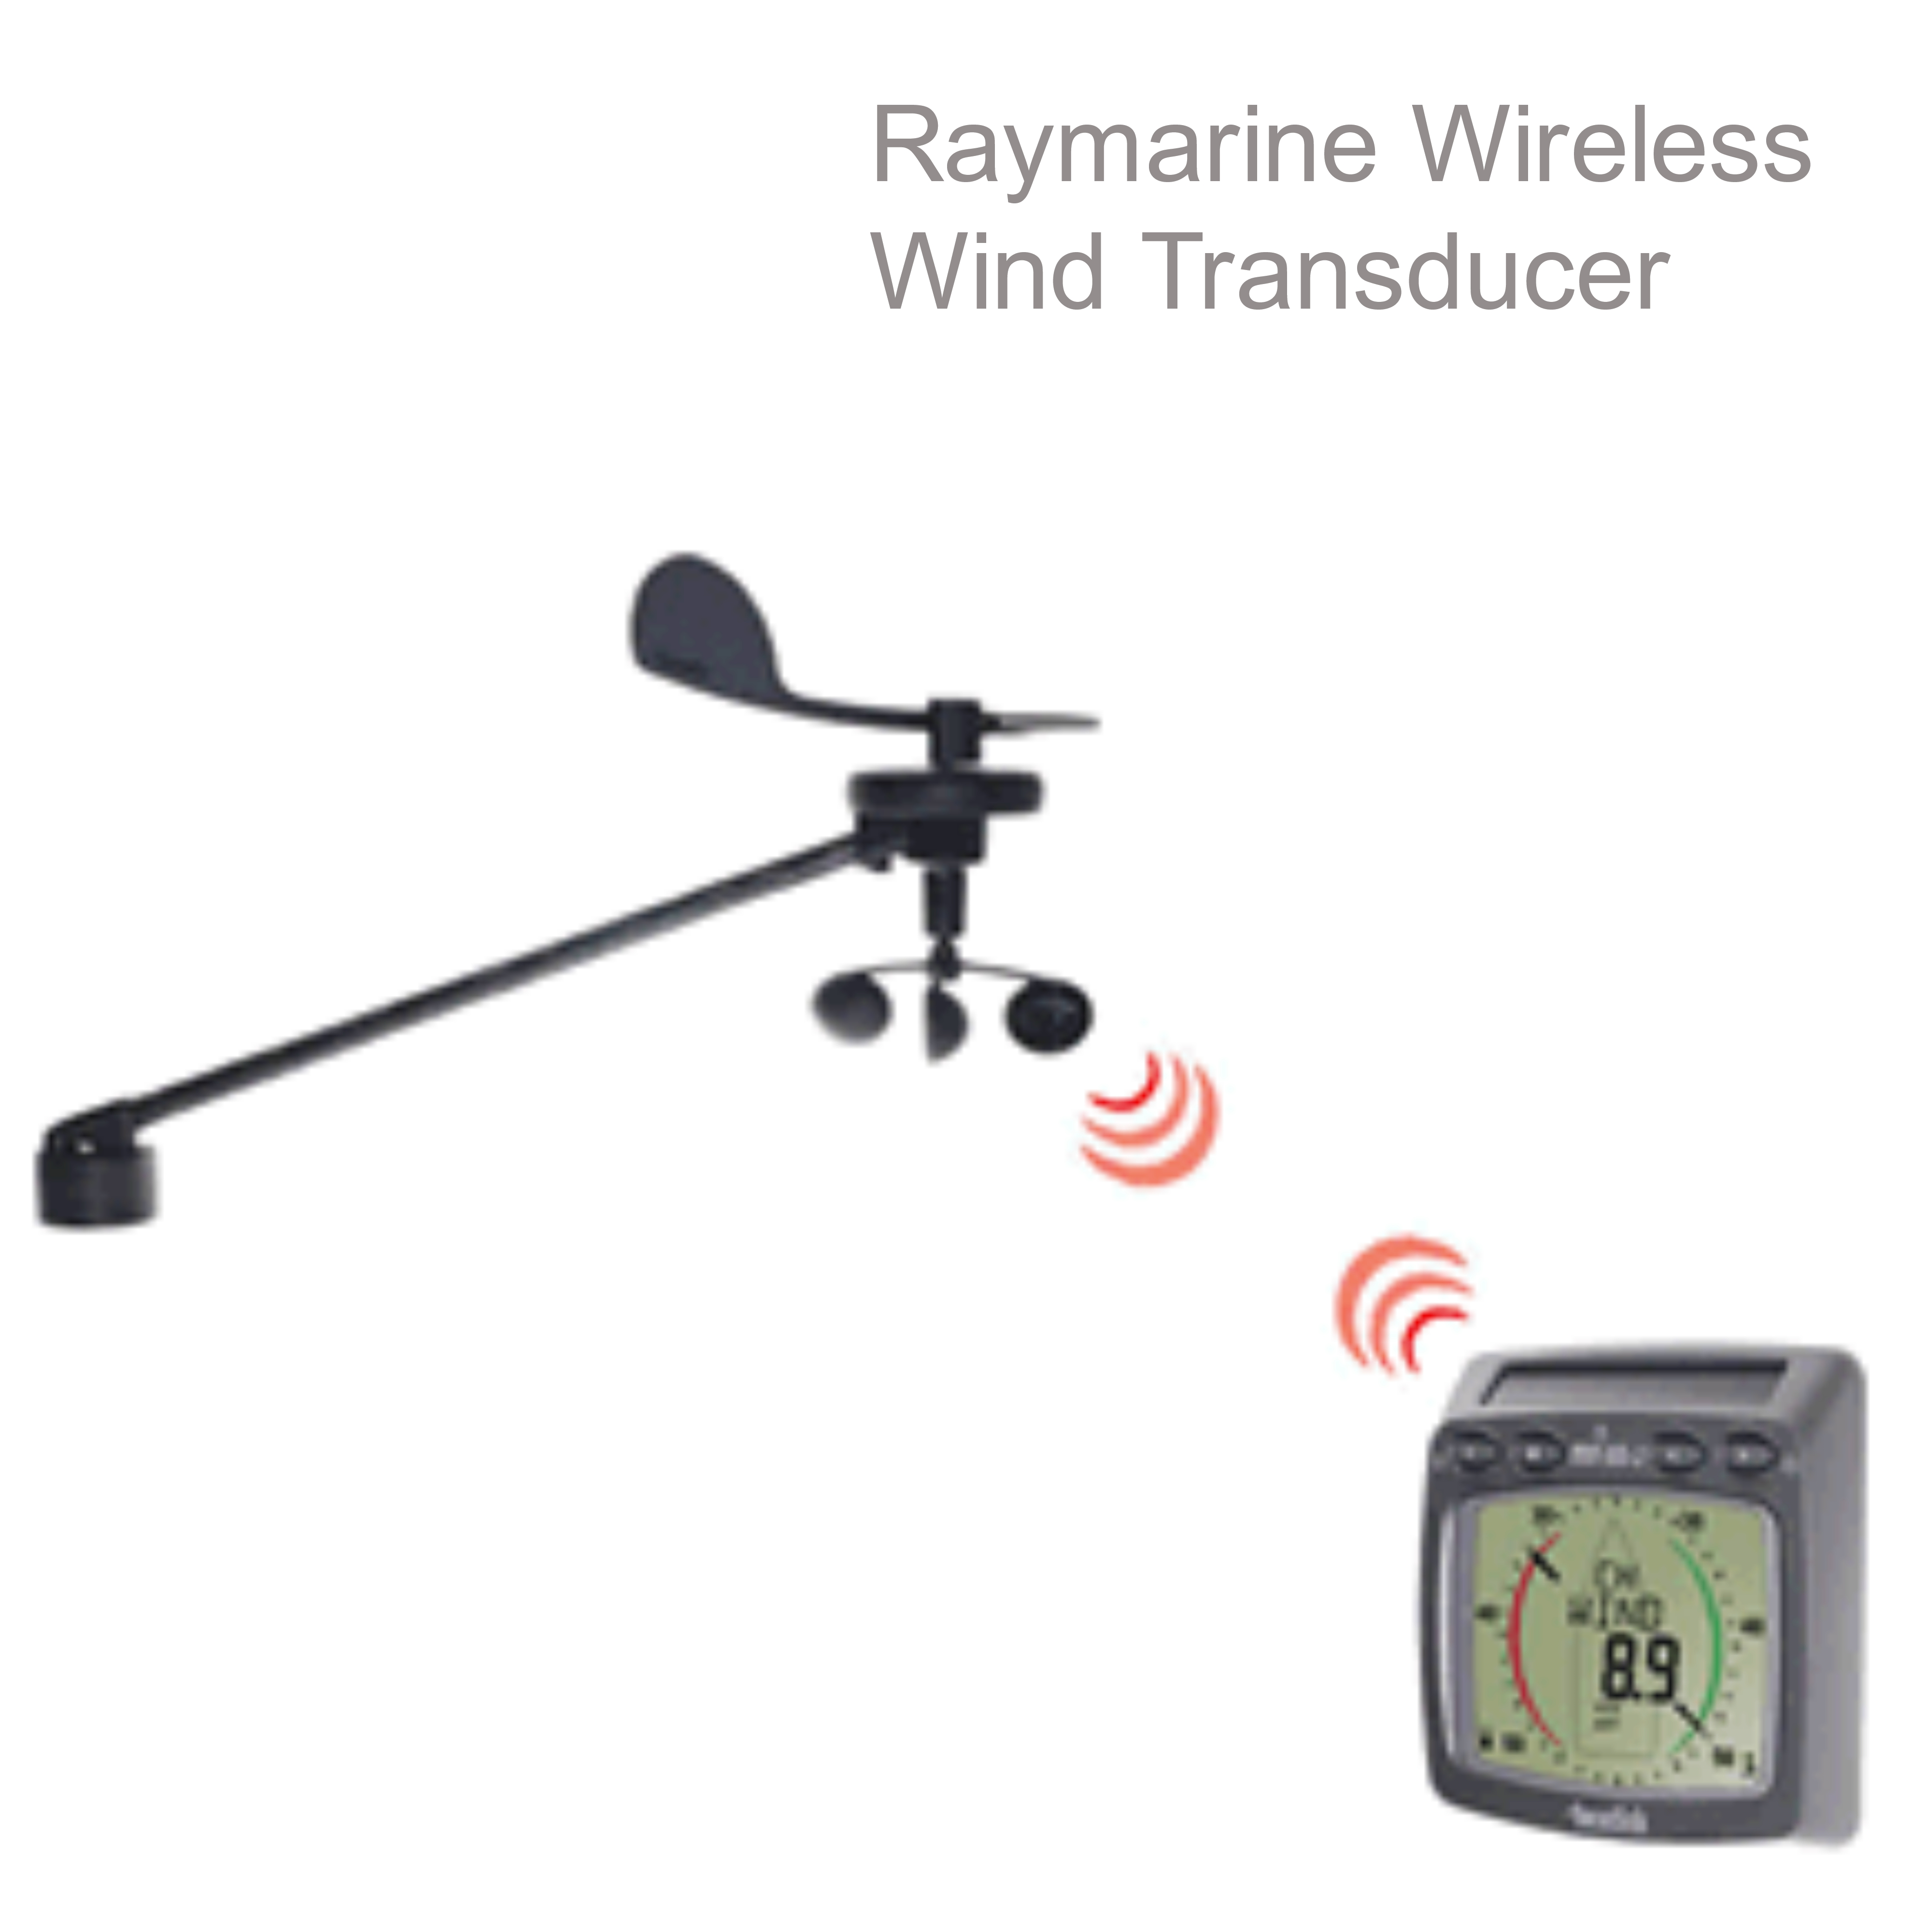 Raymarine T120 Wireless Wind Transducer|SolarPower|Waterproof|Wind Speed|VGA|Compass|For Marine